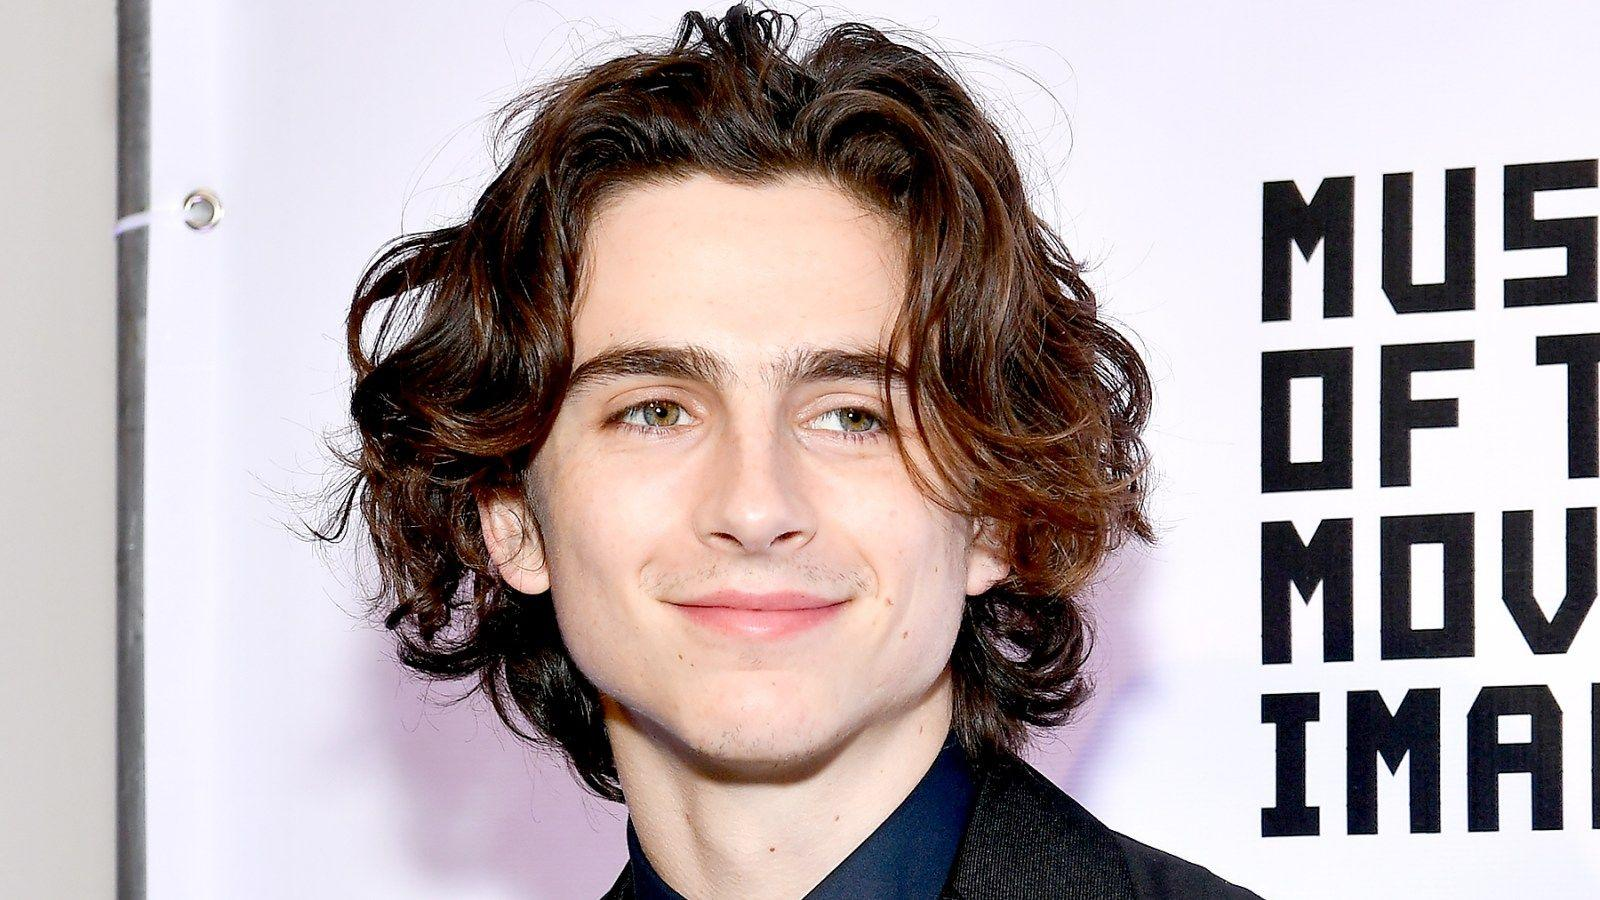 Timothee Chalamet Archives - Us Weekly